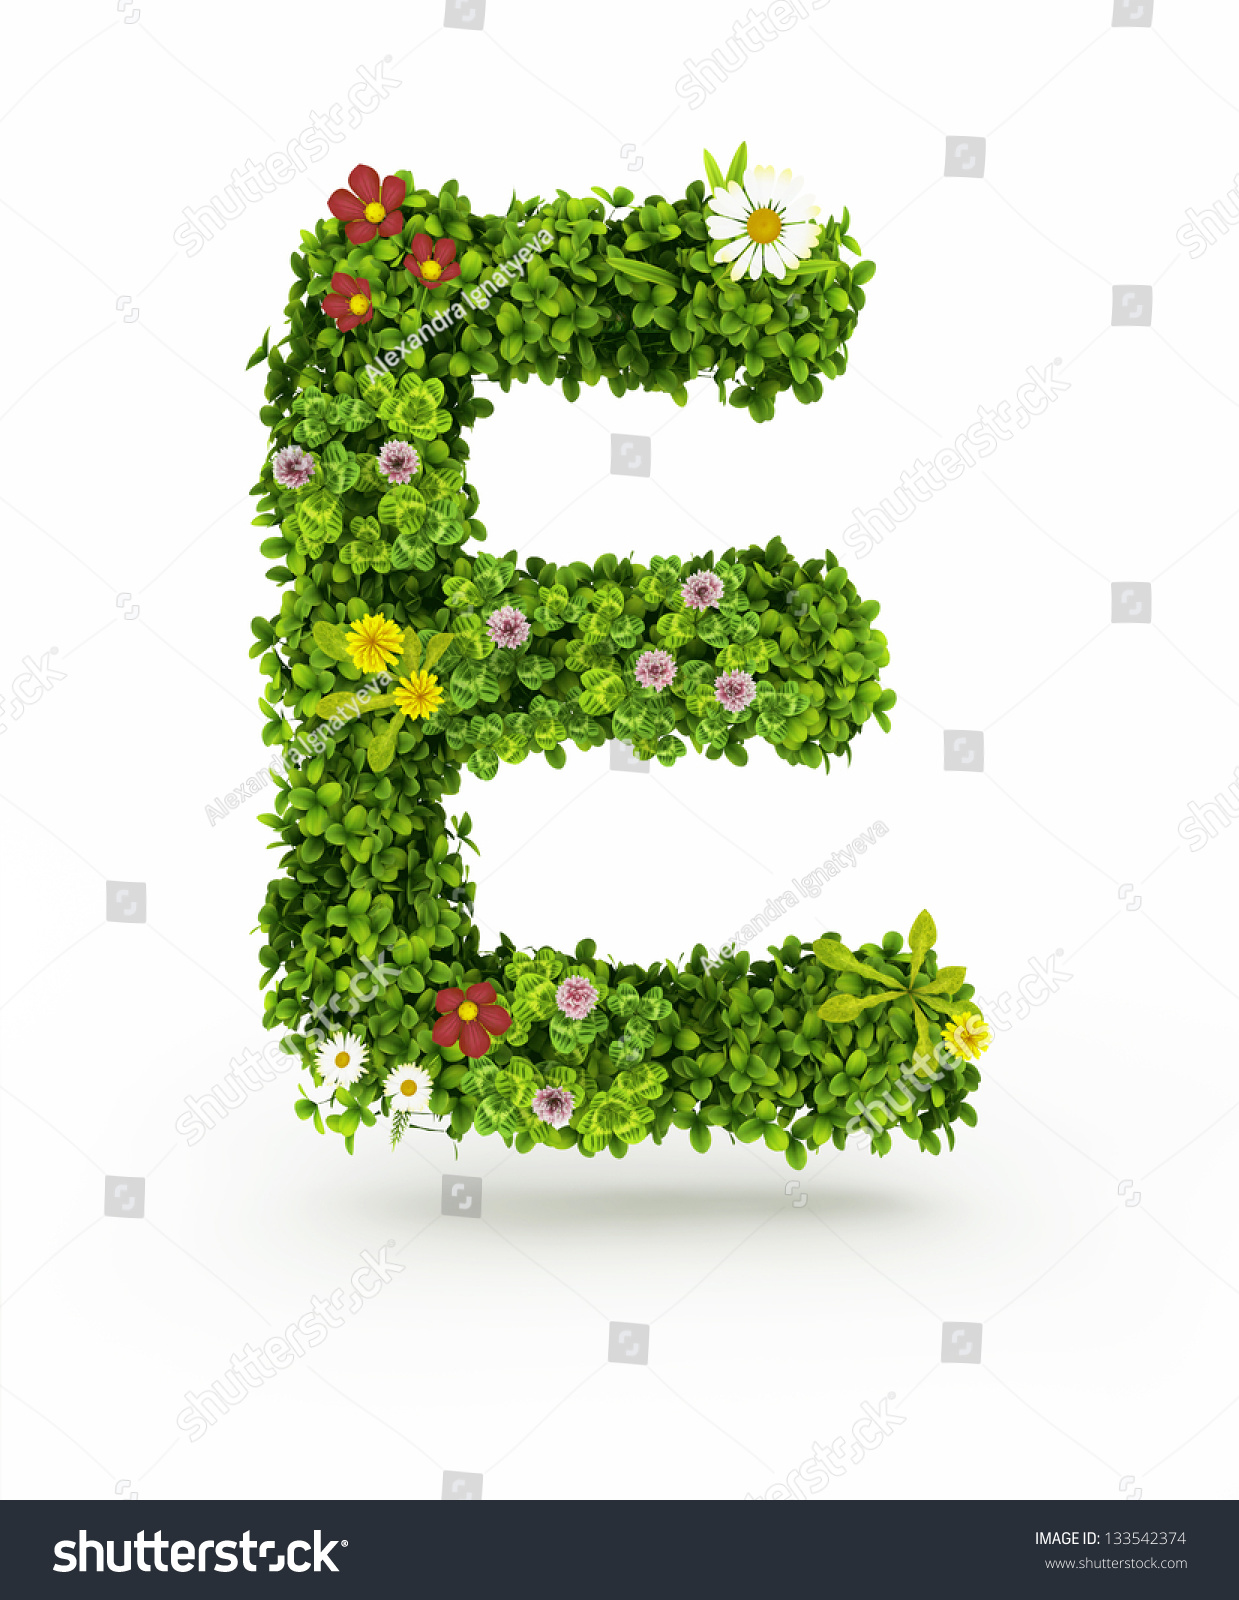 very nice floral alphabetletters made flowers stock illustration, Beautiful flower